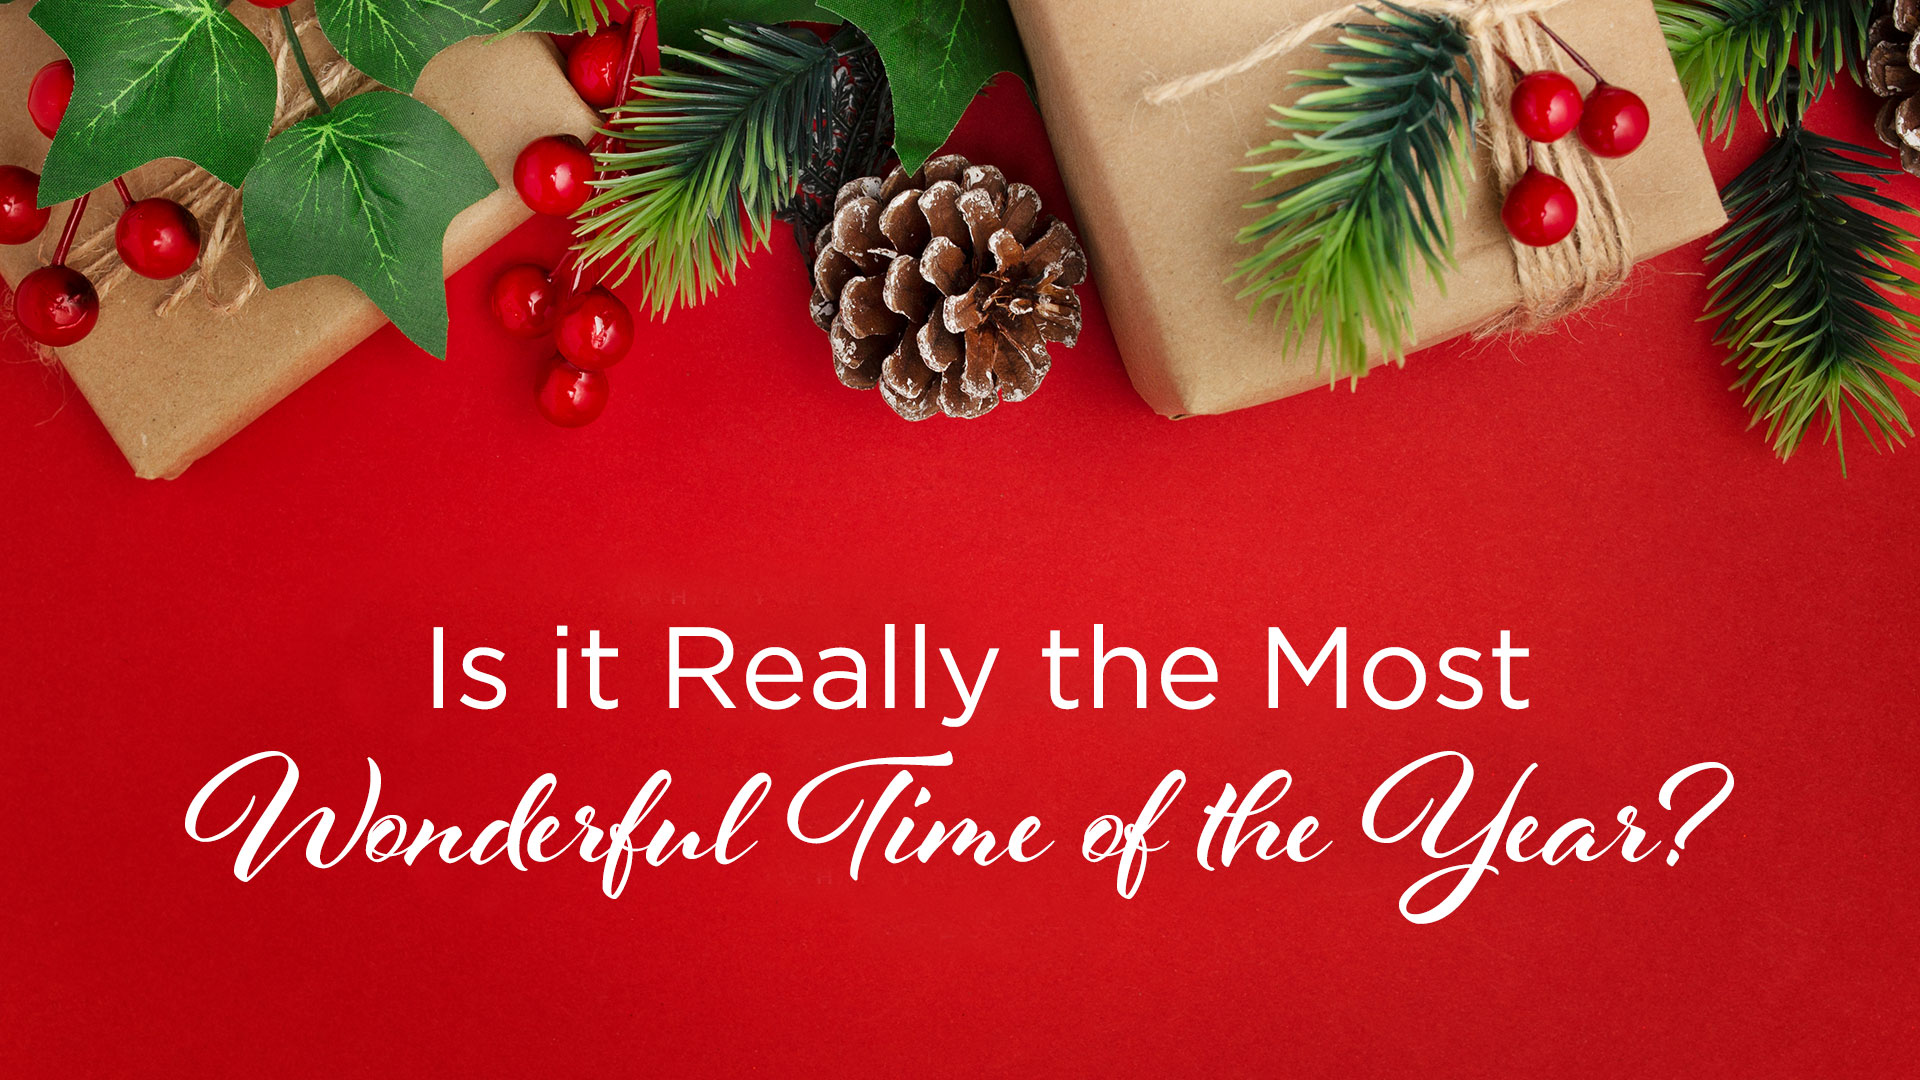 Is it Really the Most Wonderful Time of the Year?